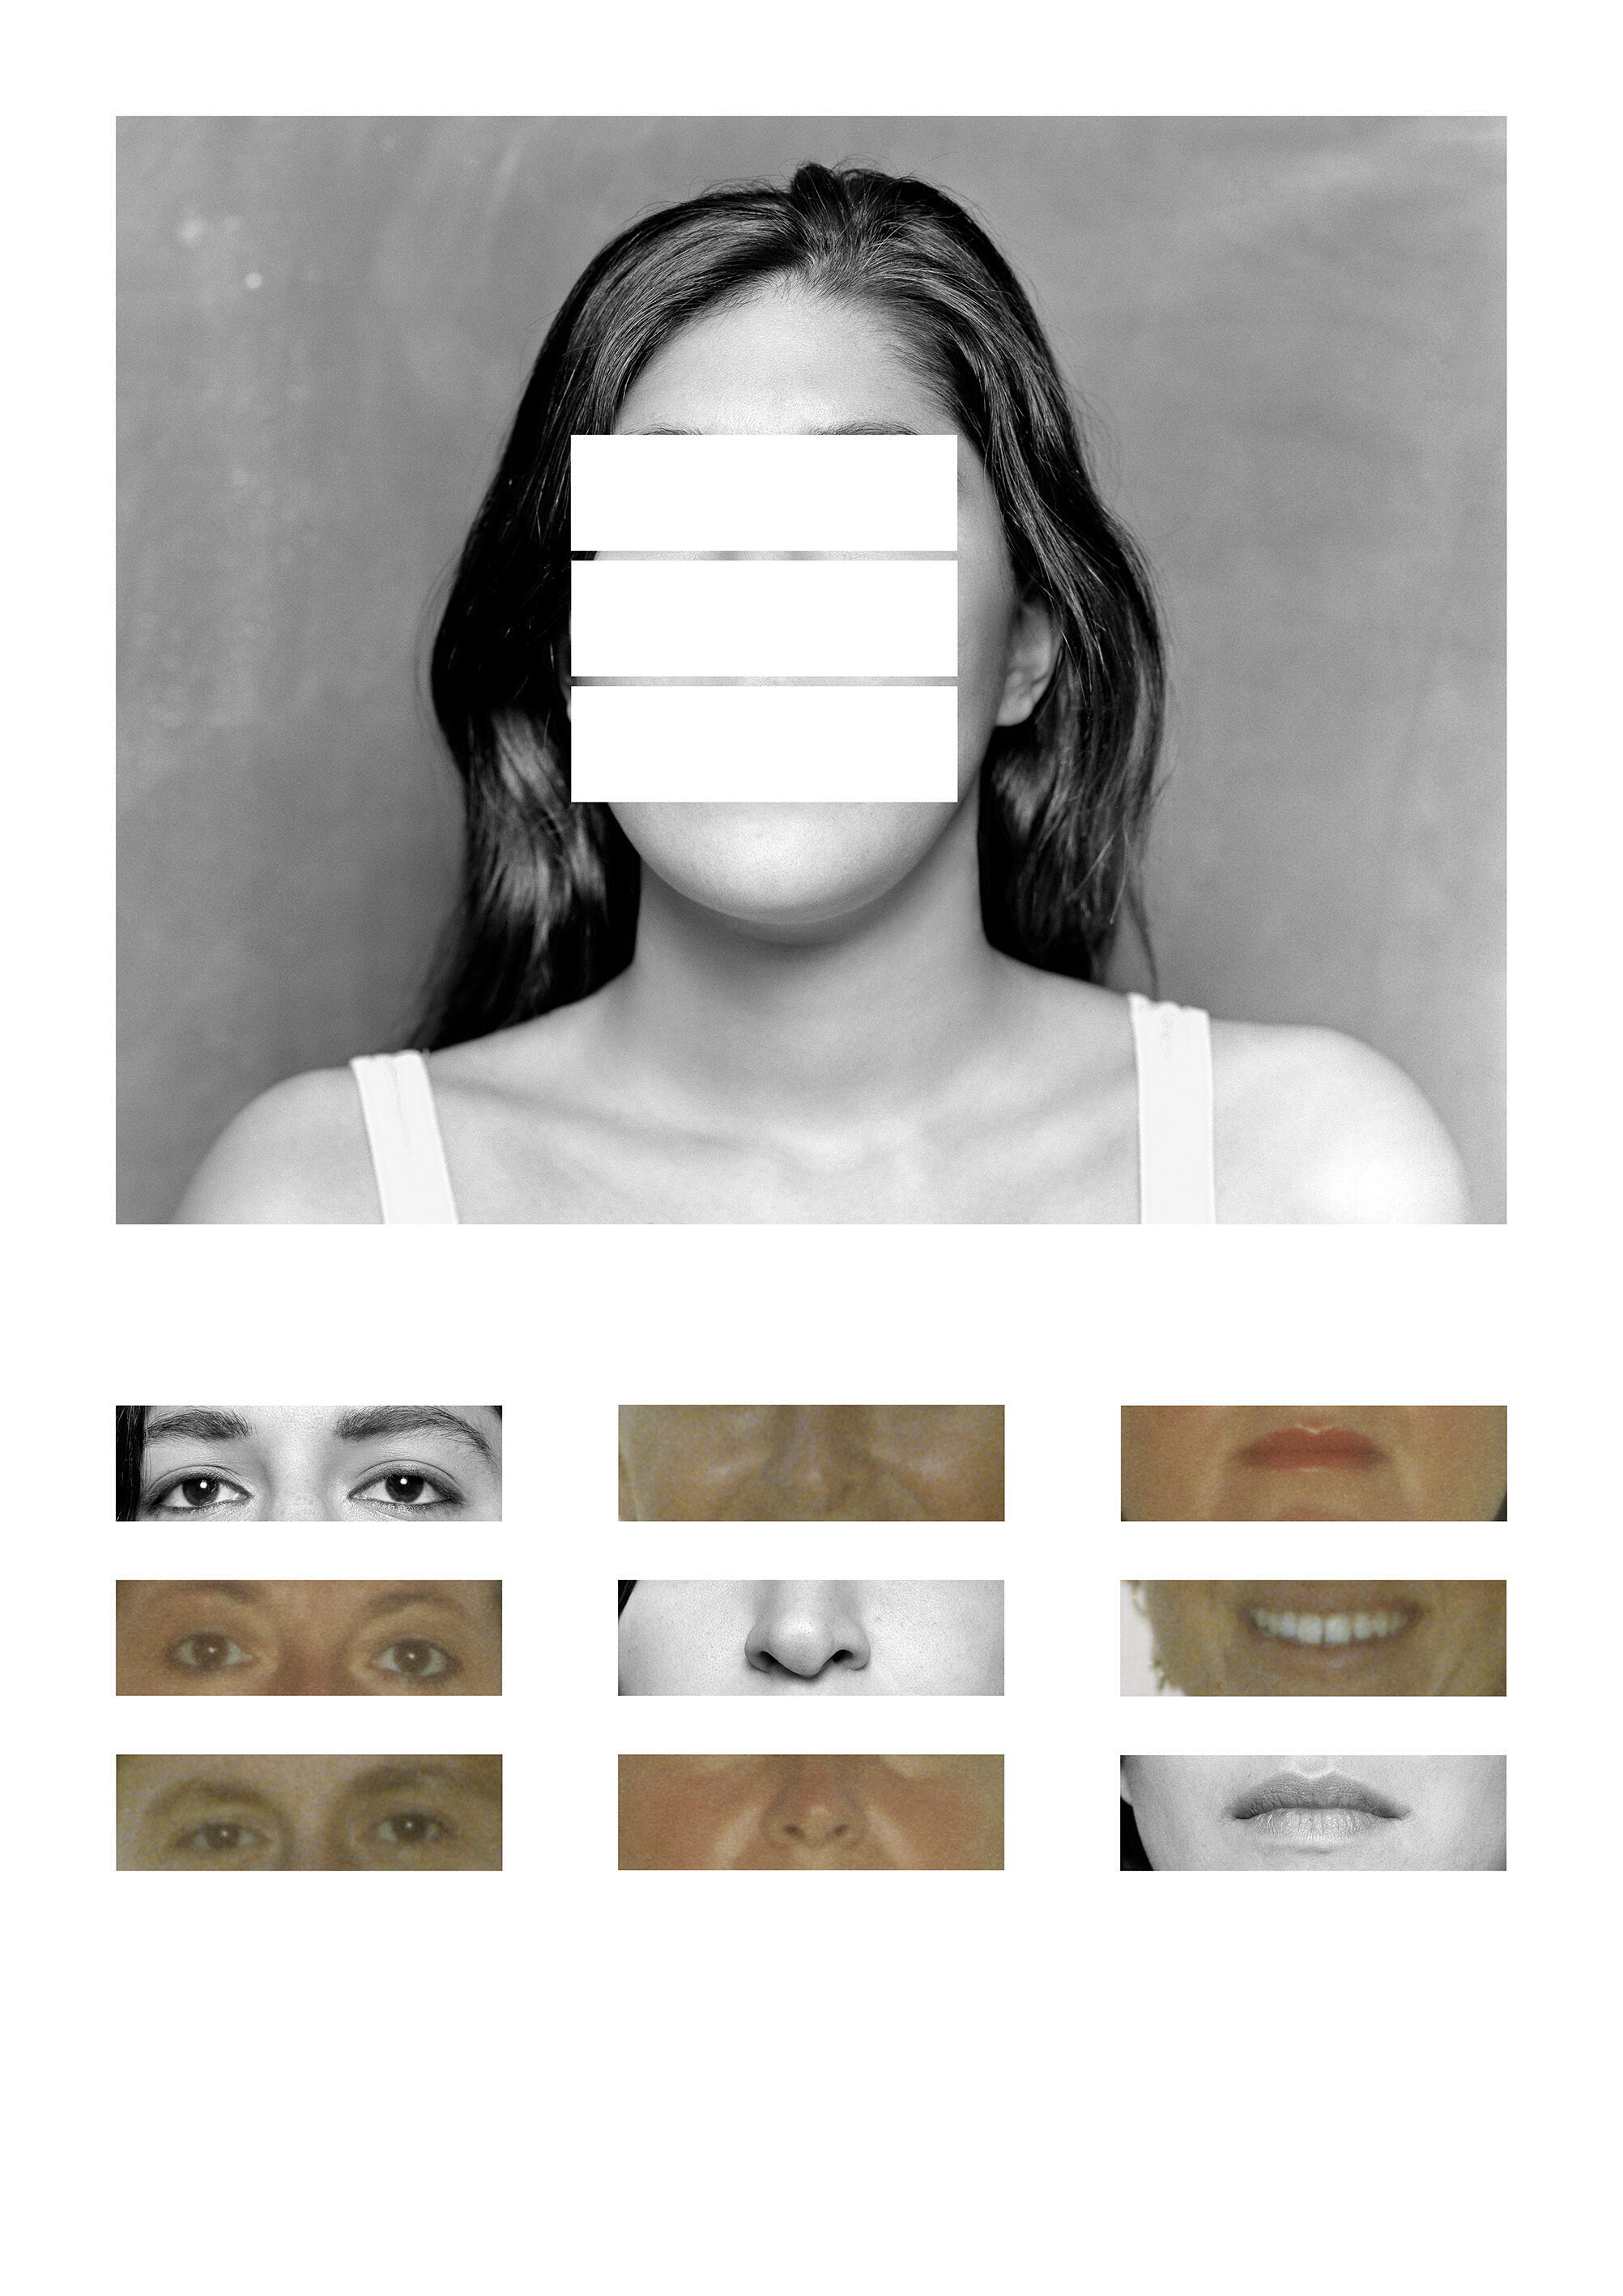 Physiognomic exclusion process - 'The Y' project